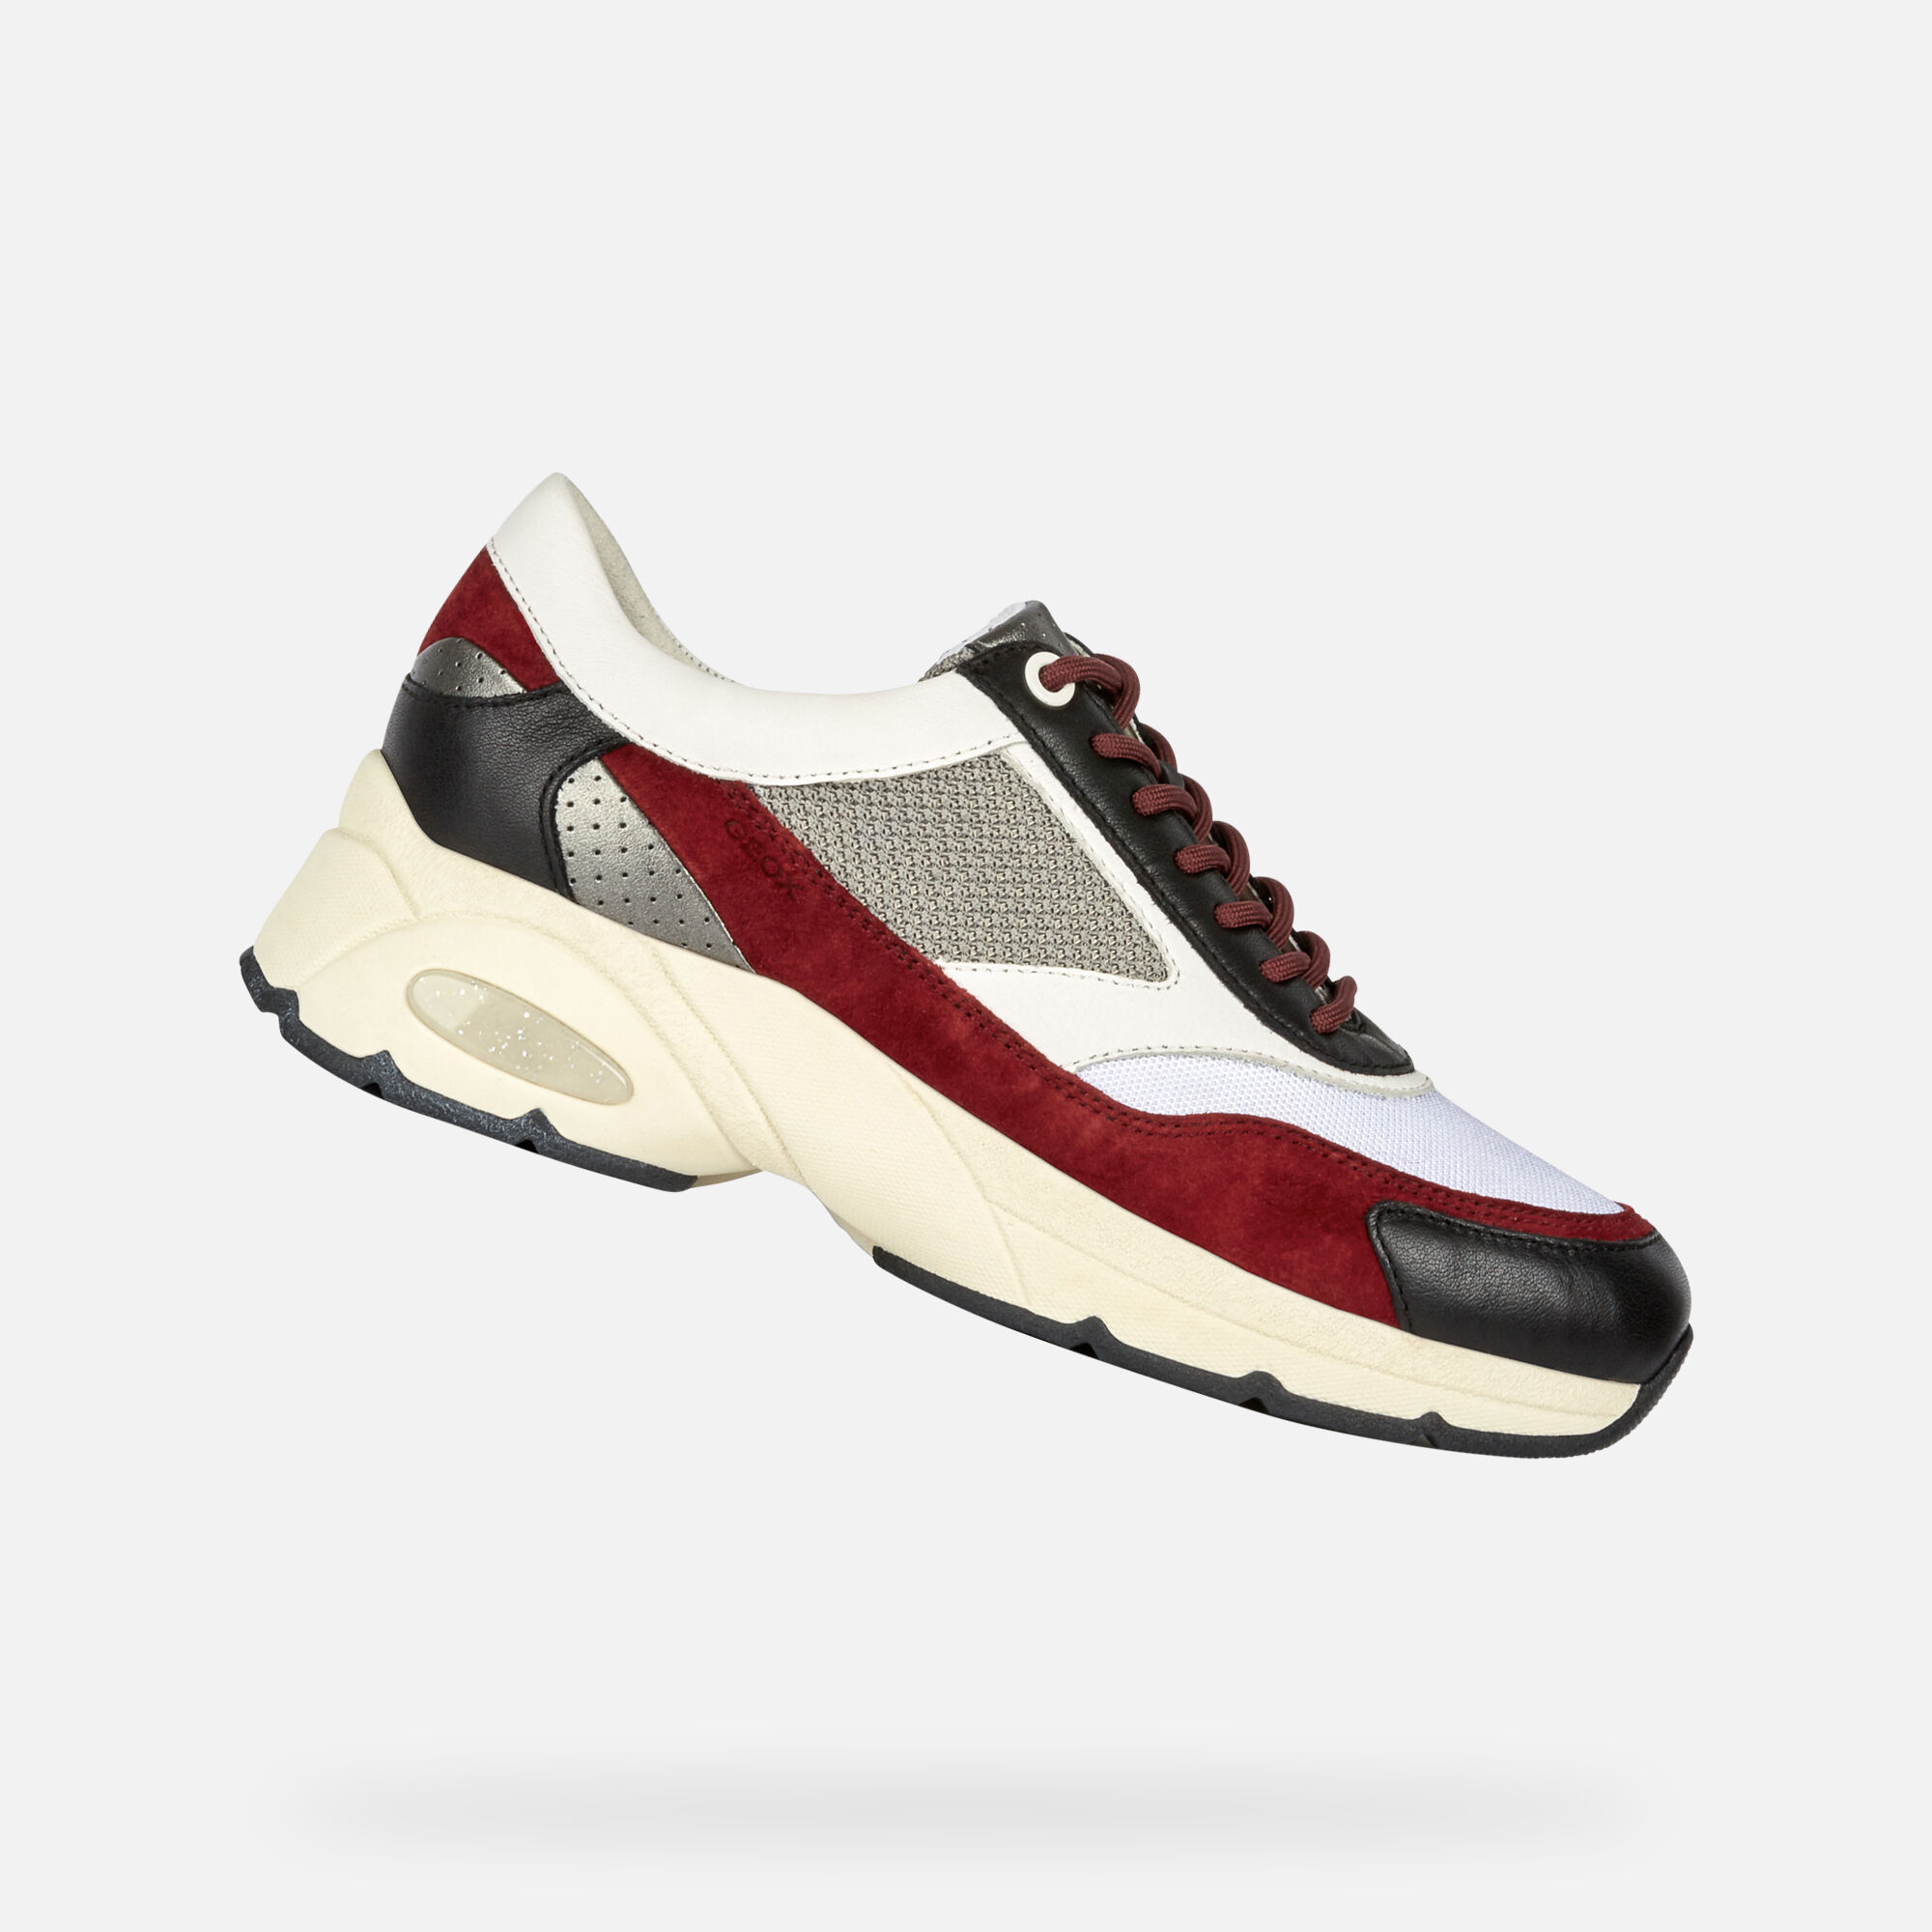 Geox D ALHOUR Sneakers Basse Donna | Geox Autunno Inverno